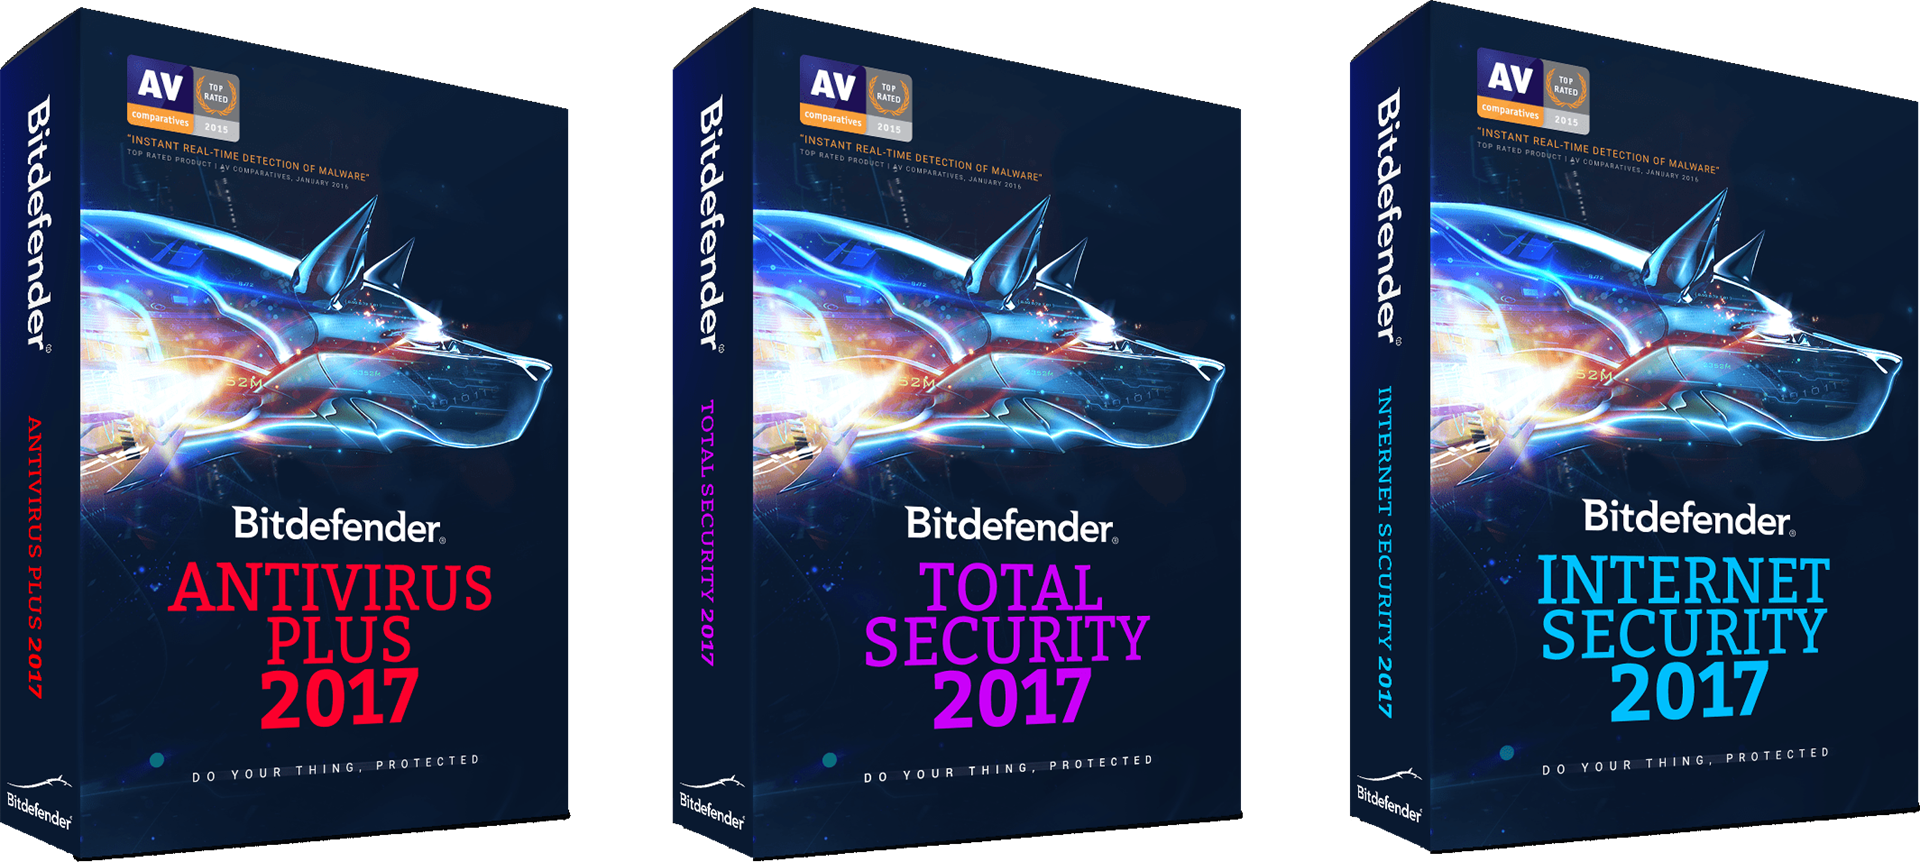 BITDEFENDER 2017 - Editor's Choice Screenshot